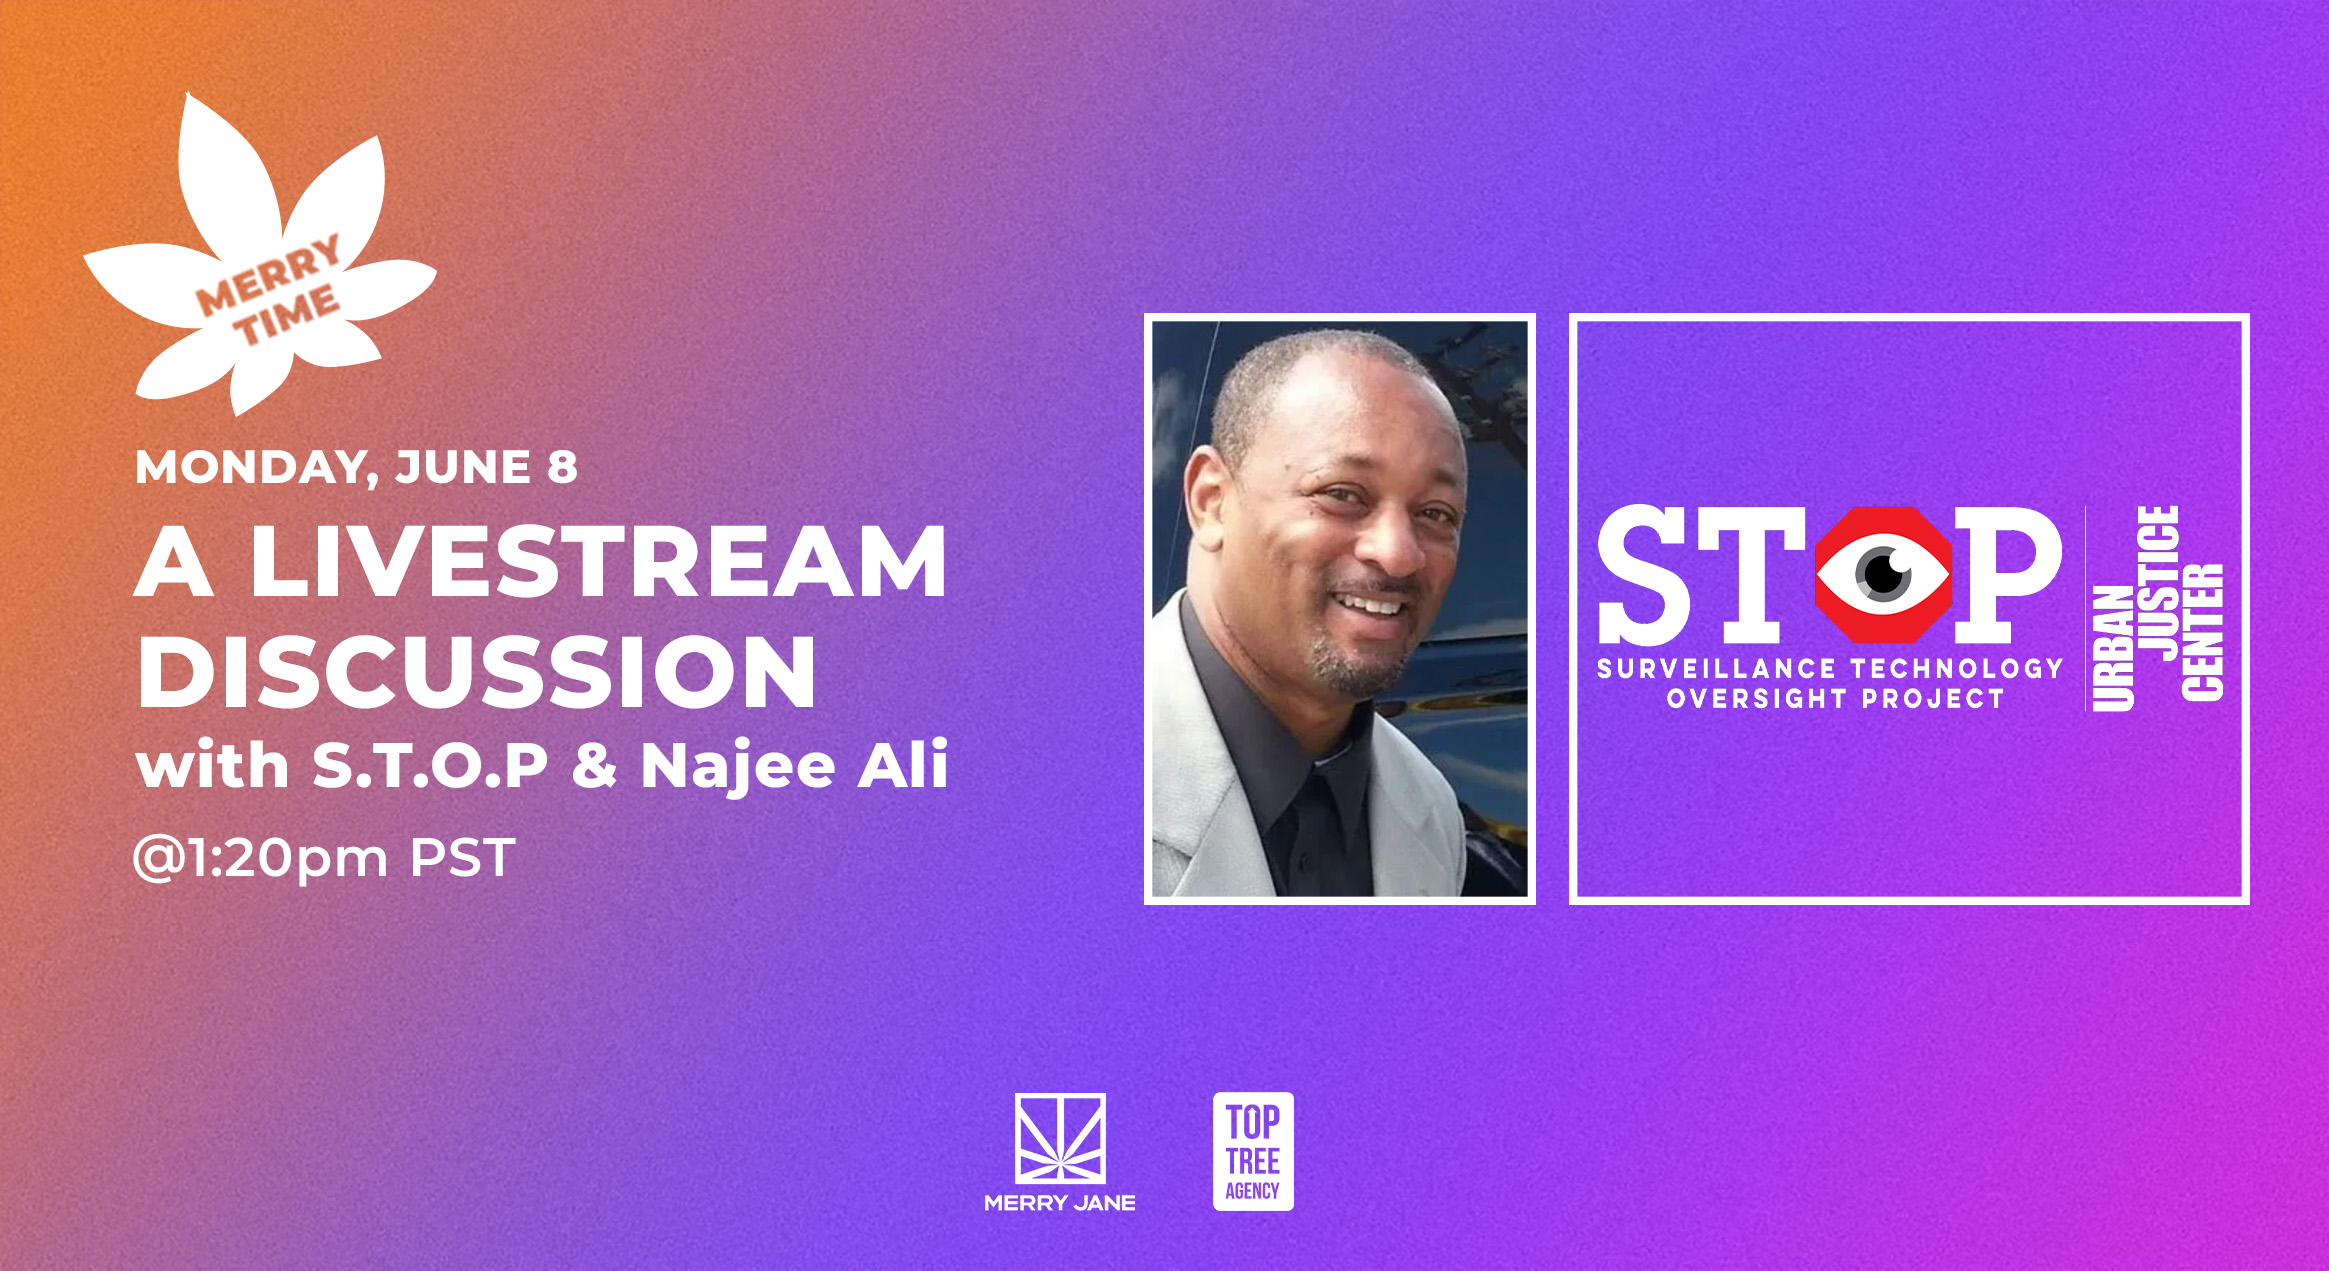 """MERRY TIME"" Live Stream to Feature Watchdog Group S.T.O.P. and Activist Najee Ali"